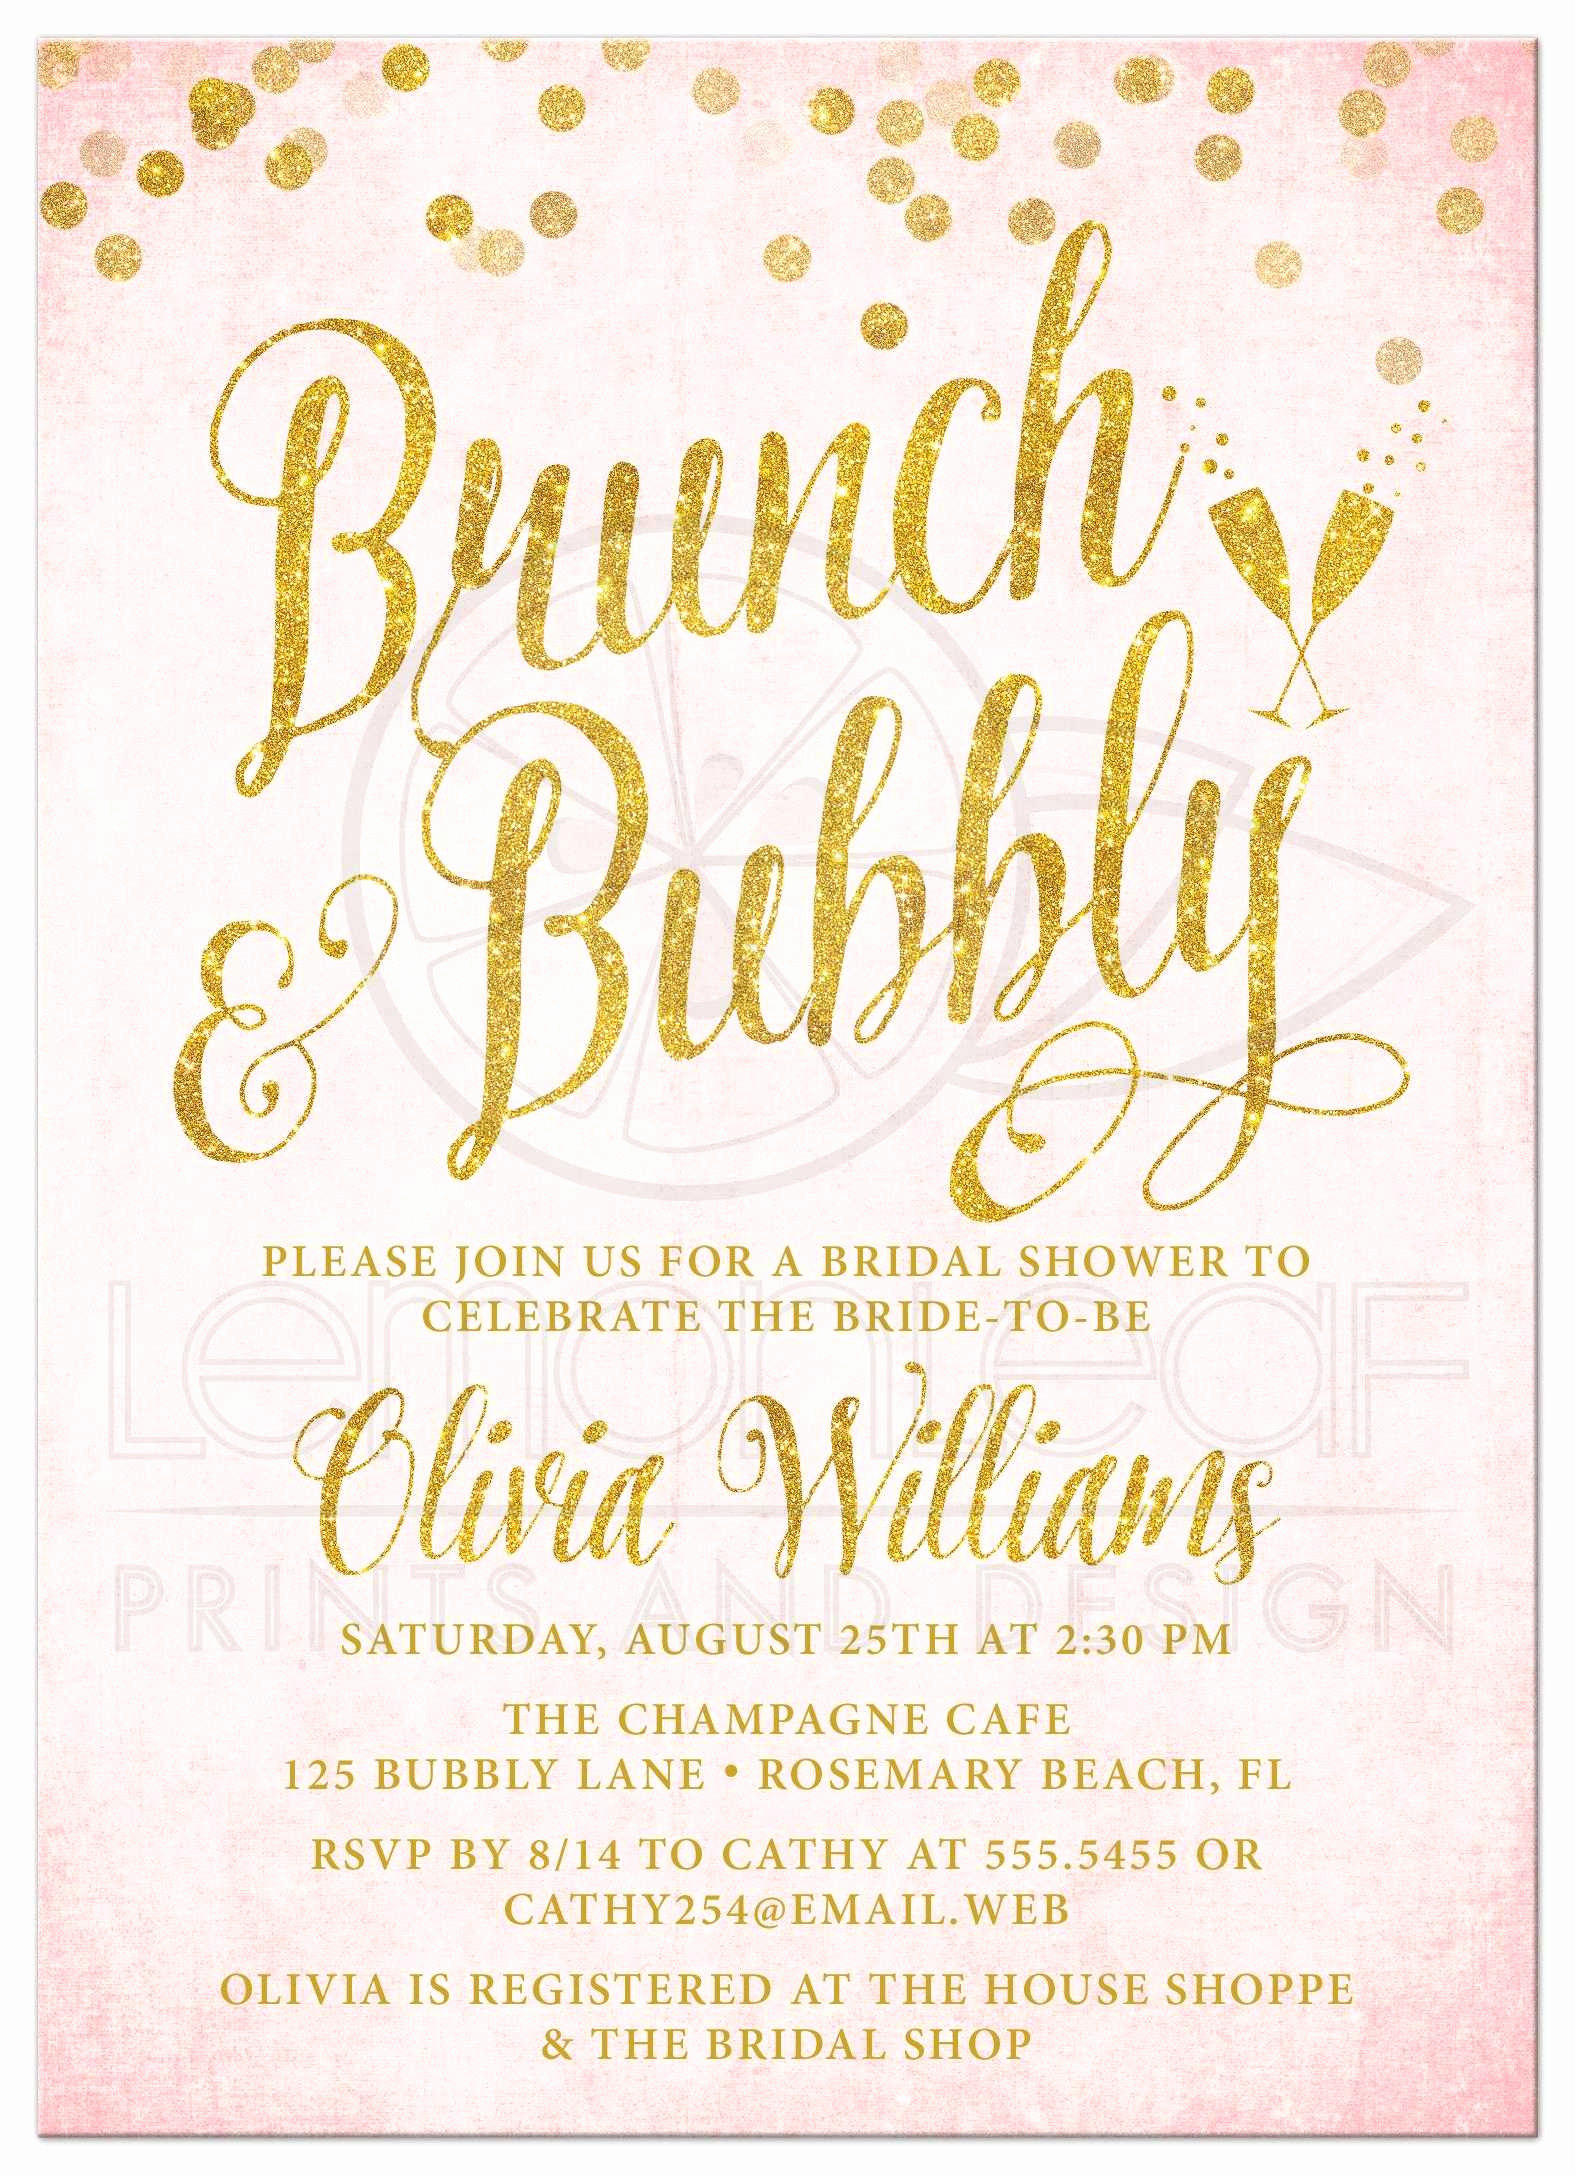 Birthday Brunch Invitation Wording Inspirational Pink & Gold Brunch & Bubbly Bridal Shower Invitations